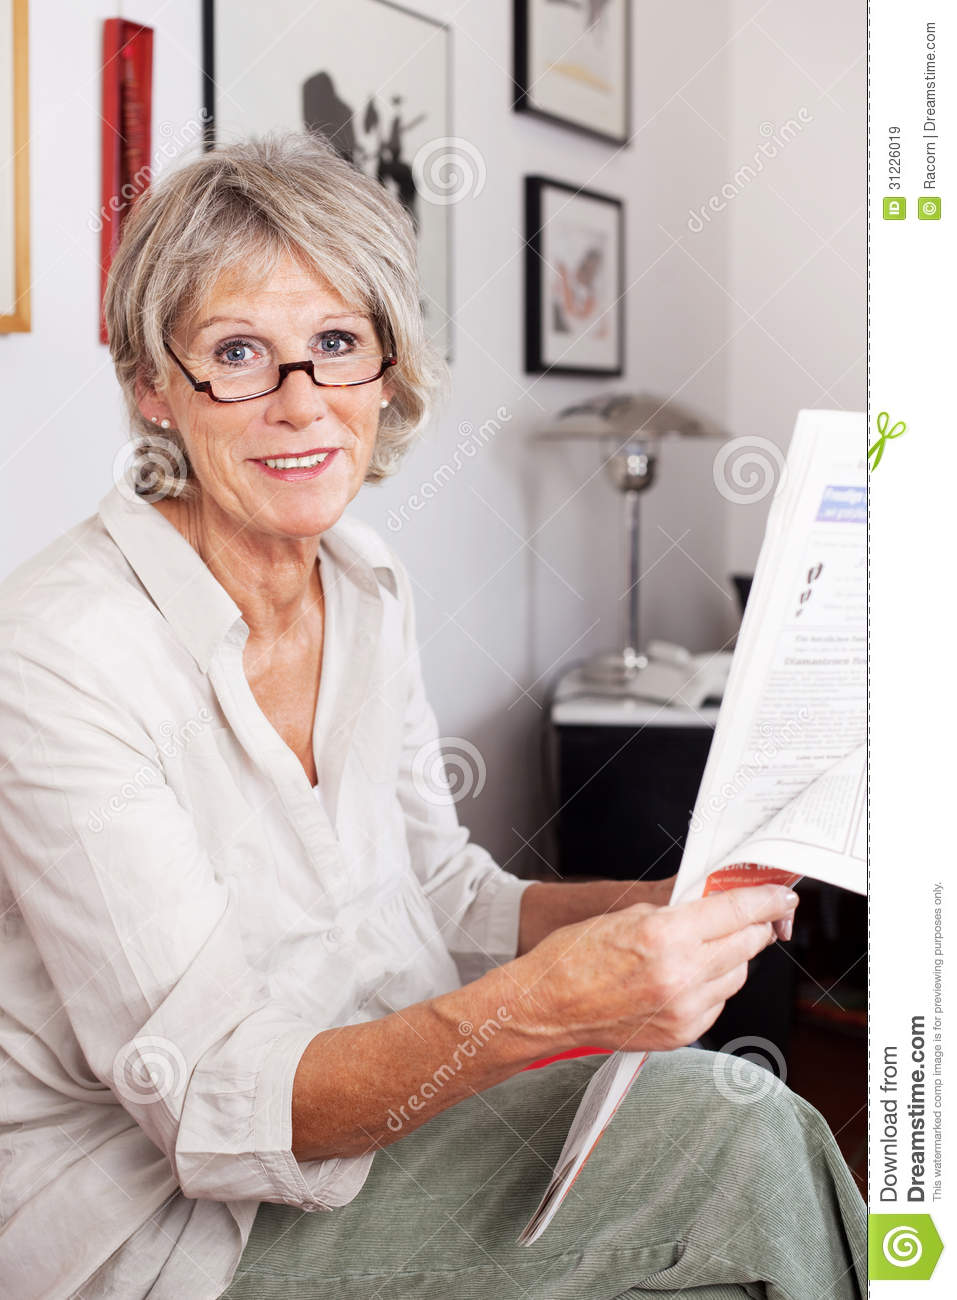 Stock Images Yellow Submarine Image8387244 additionally Ikea Sektion Dream Kitchen Diy furthermore Chalet In Legno Prefabbricati Chalet Fabre Plein Air 37 3 together with Stock Images Different Social Technology Icon Image27723724 furthermore Royalty Free Stock Images Elderly Woman Enjoying Reading Newspaper Grey Haired Attractive Wearing Glasses Sitting Her Living Room Image31226019. on living room styles pictures